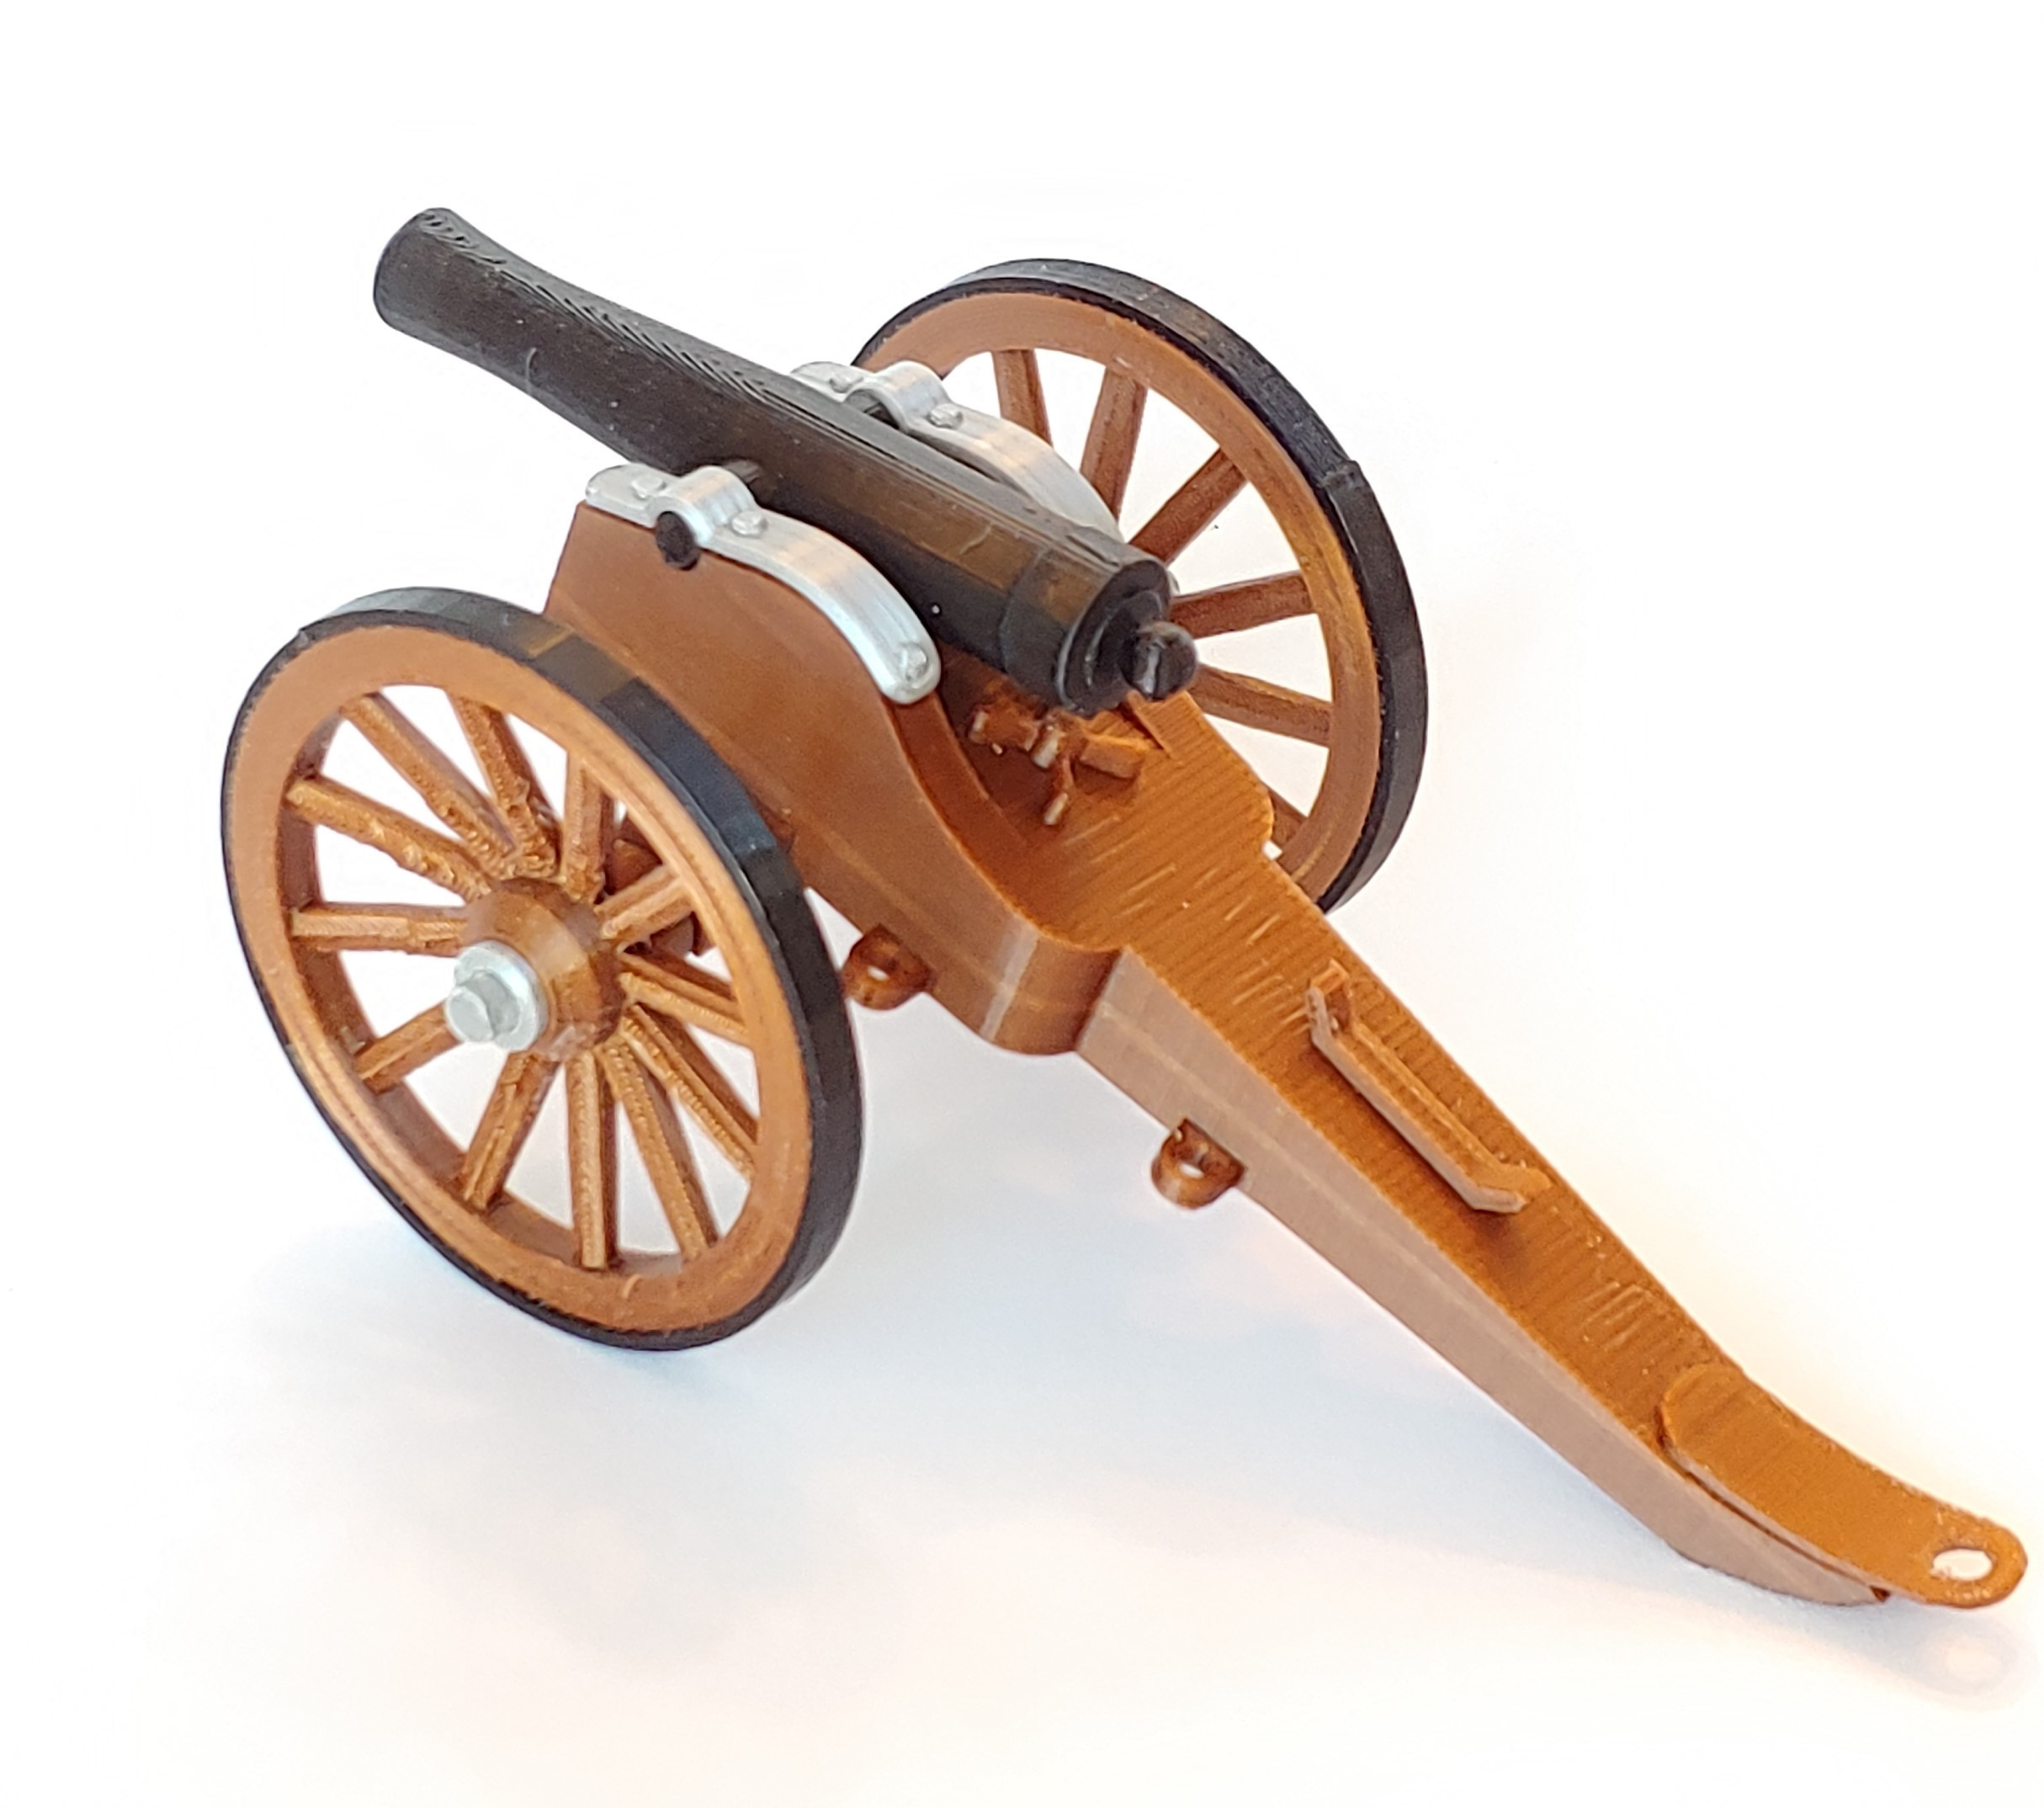 C-Cannon02.jpg Download free STL file Civil War Cannon • 3D print template, pdasher